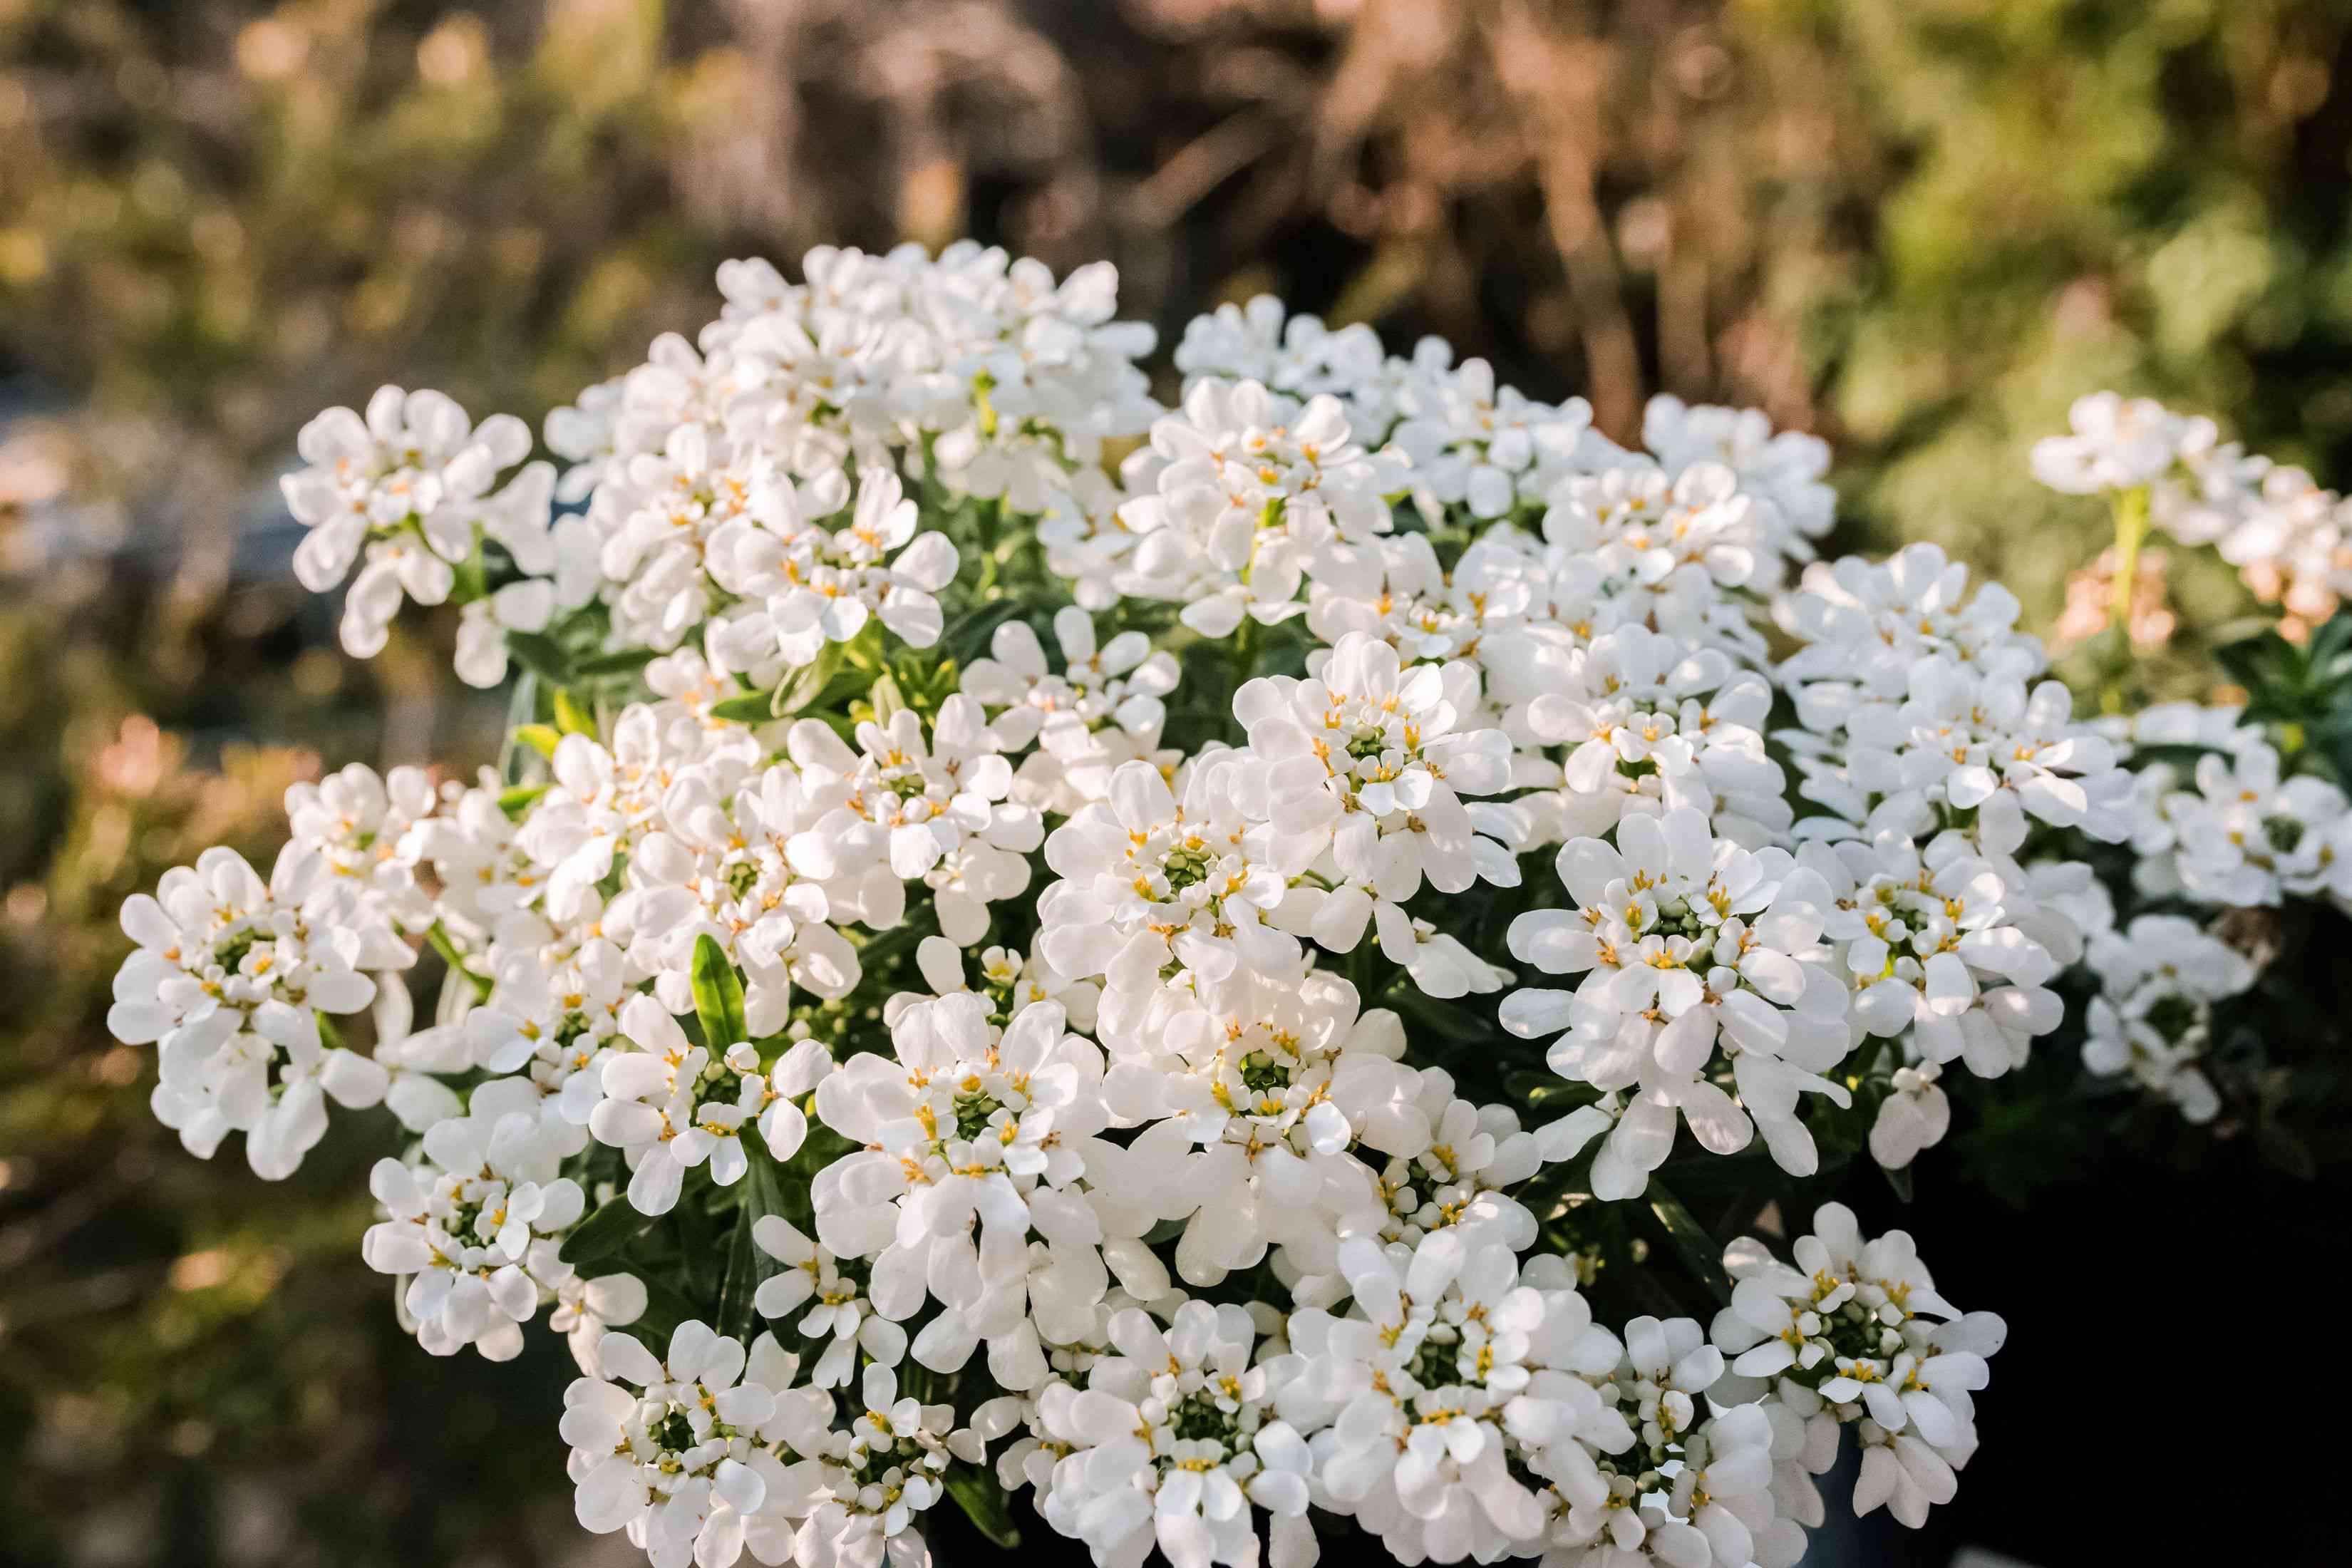 Candytuft plant with small white flower blooms clustered together closeup